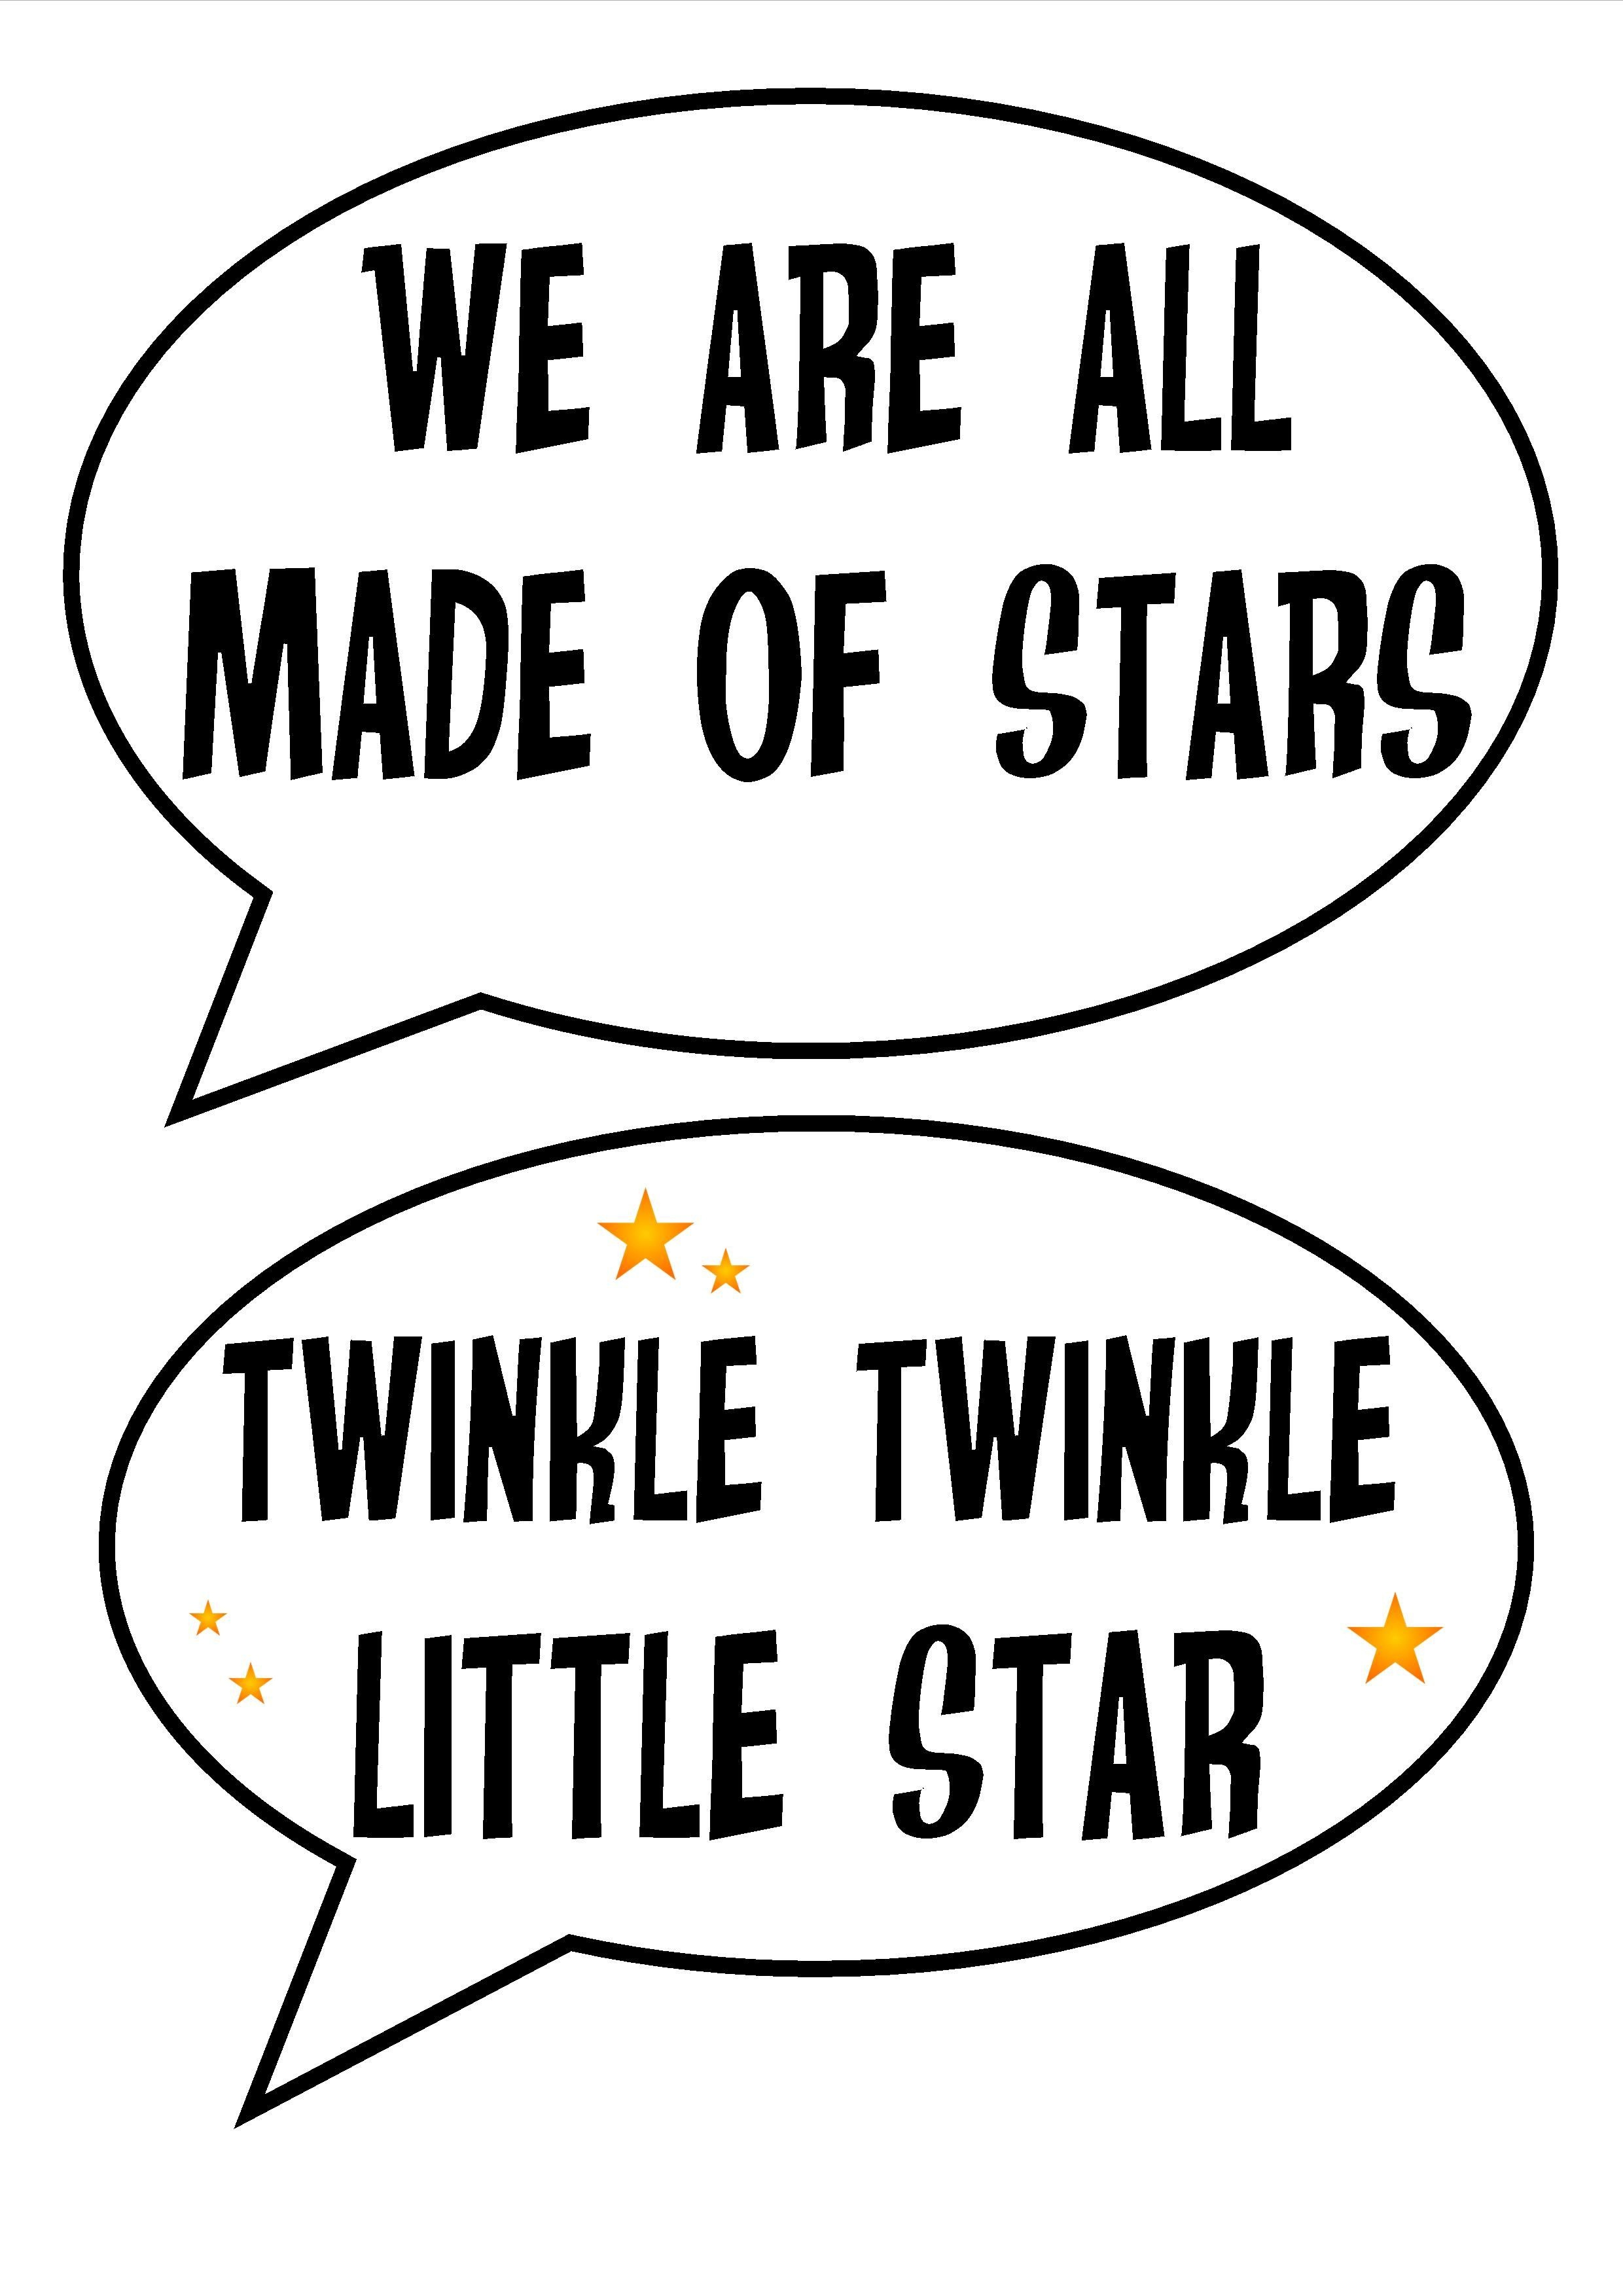 Free Printable Space Party Photobooth Astronomy Stars Planetarium - Free Printable 70's Photo Booth Props